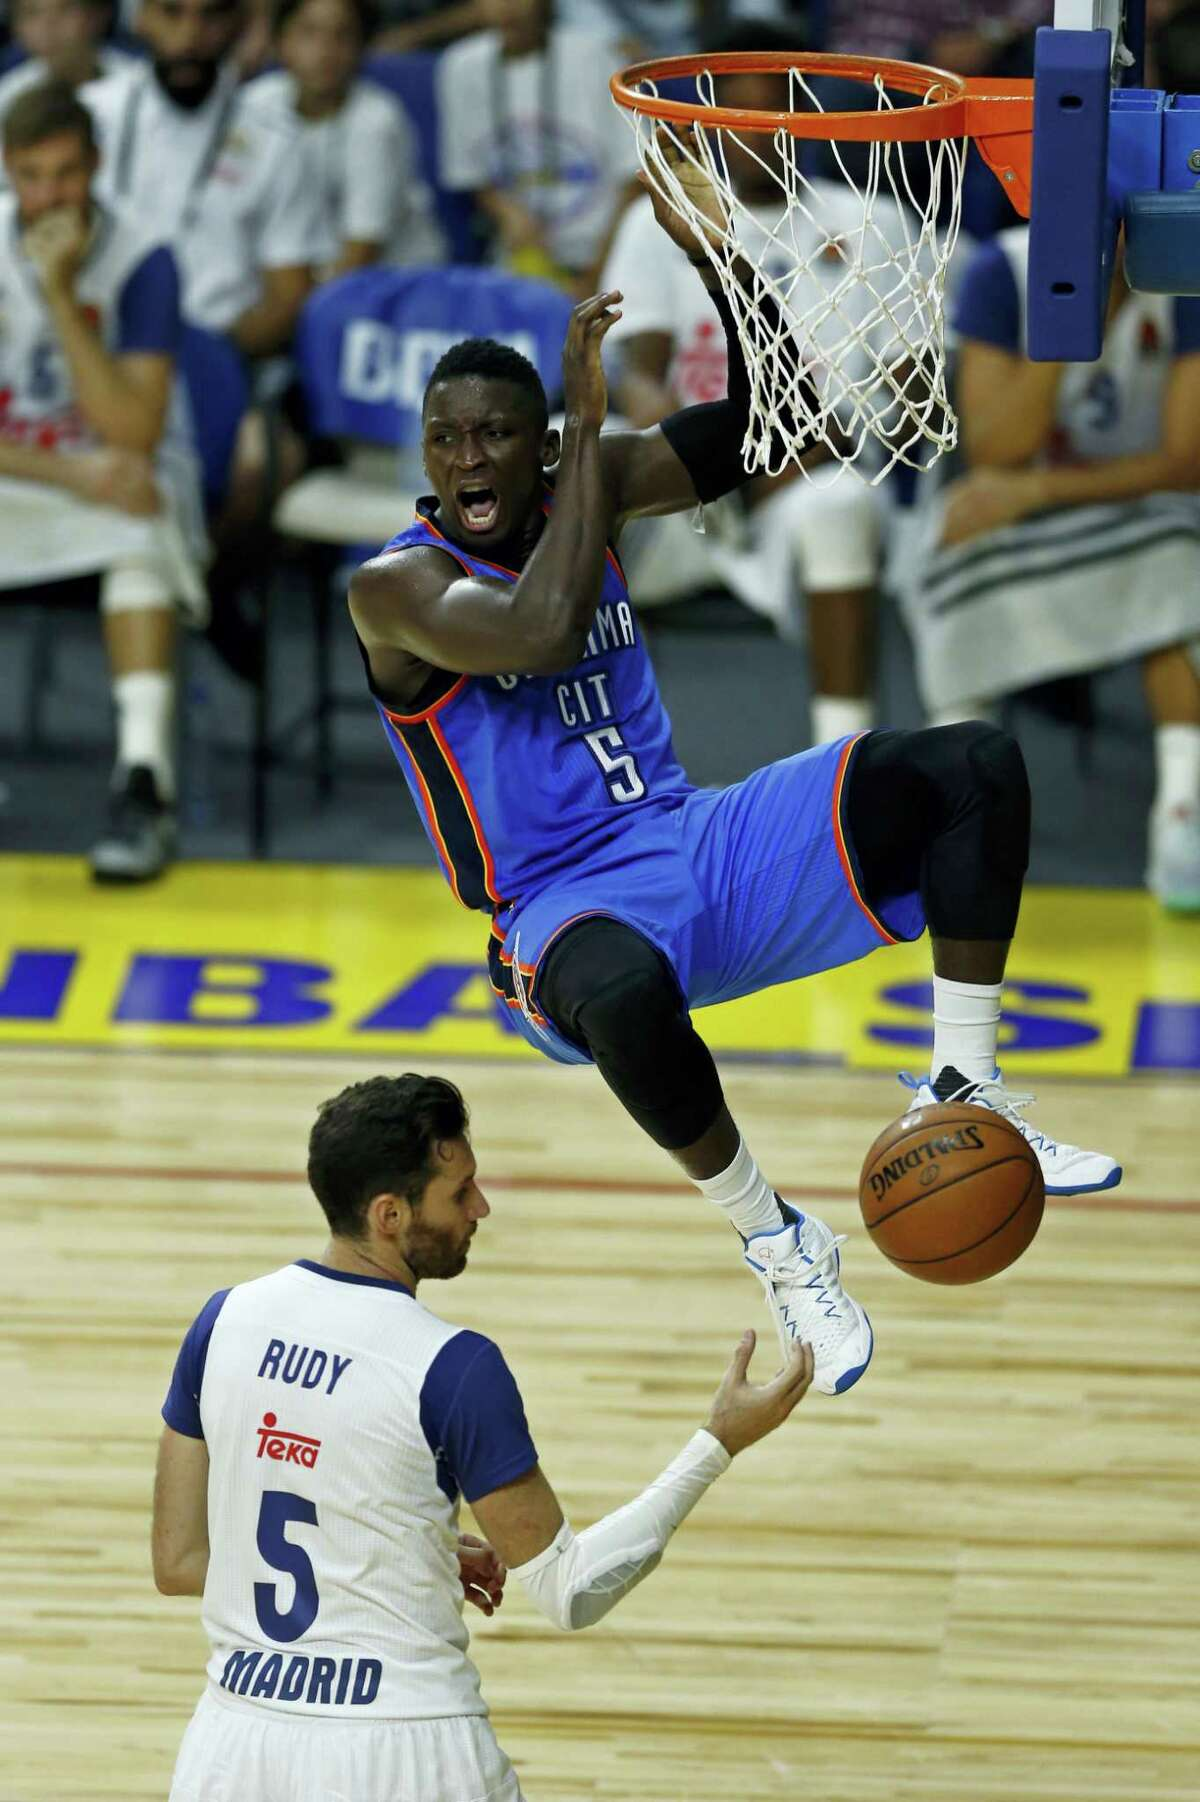 Oklahoma City Thunder guard Victor Oladipo swings on the basket after dunking during a NBA Global Games basketball match between Real Madrid and Oklahoma City Thunder in Madrid, Spain on Oct. 3, 2016.